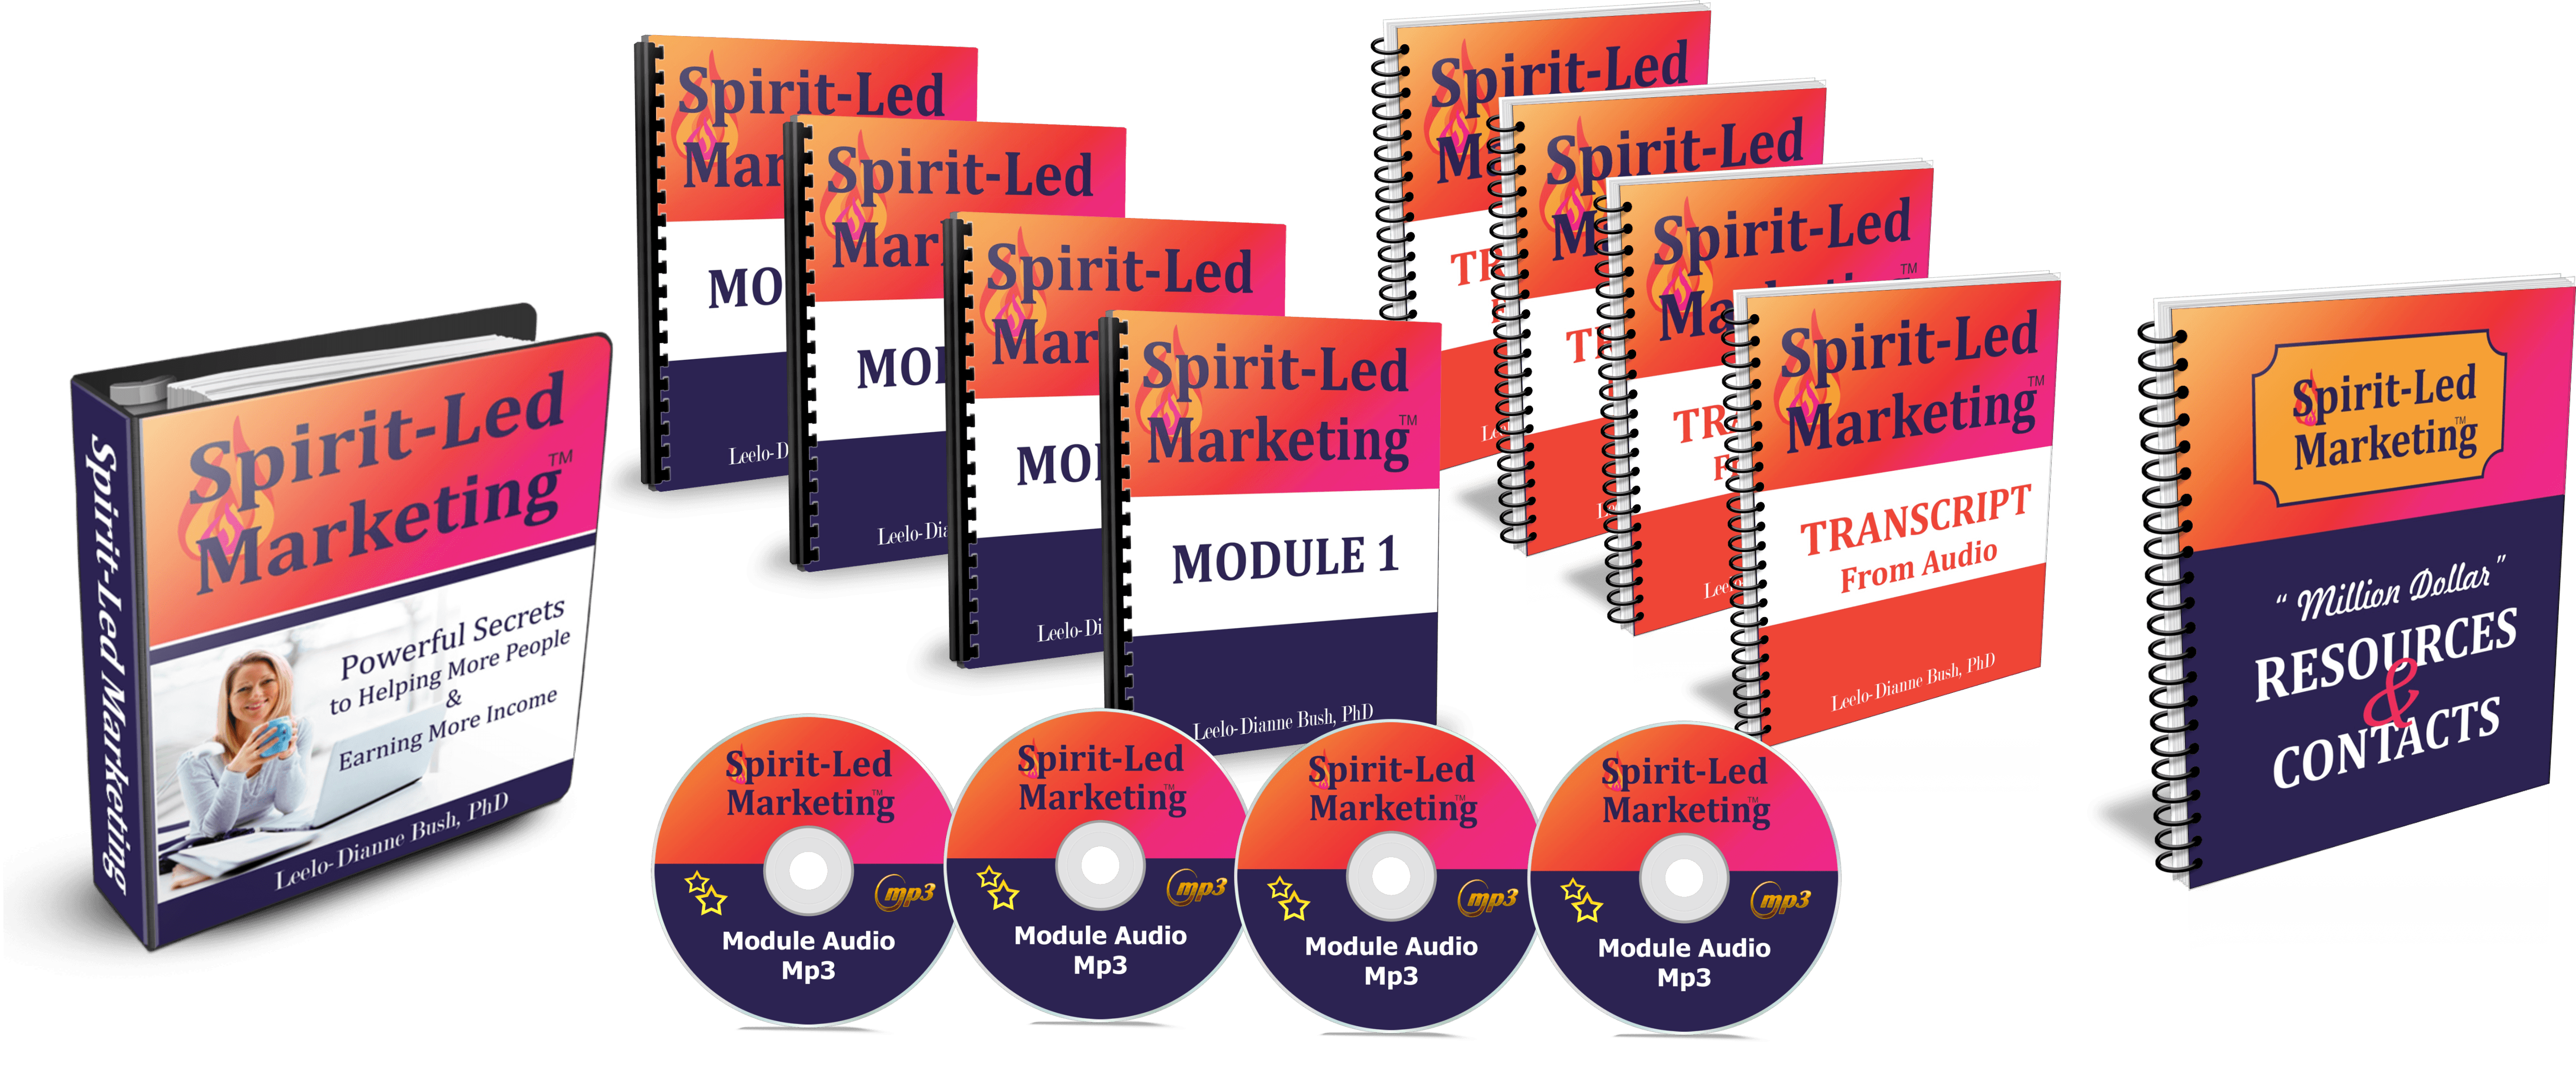 Spirit Led Marketing course by Leelo Bush PhD